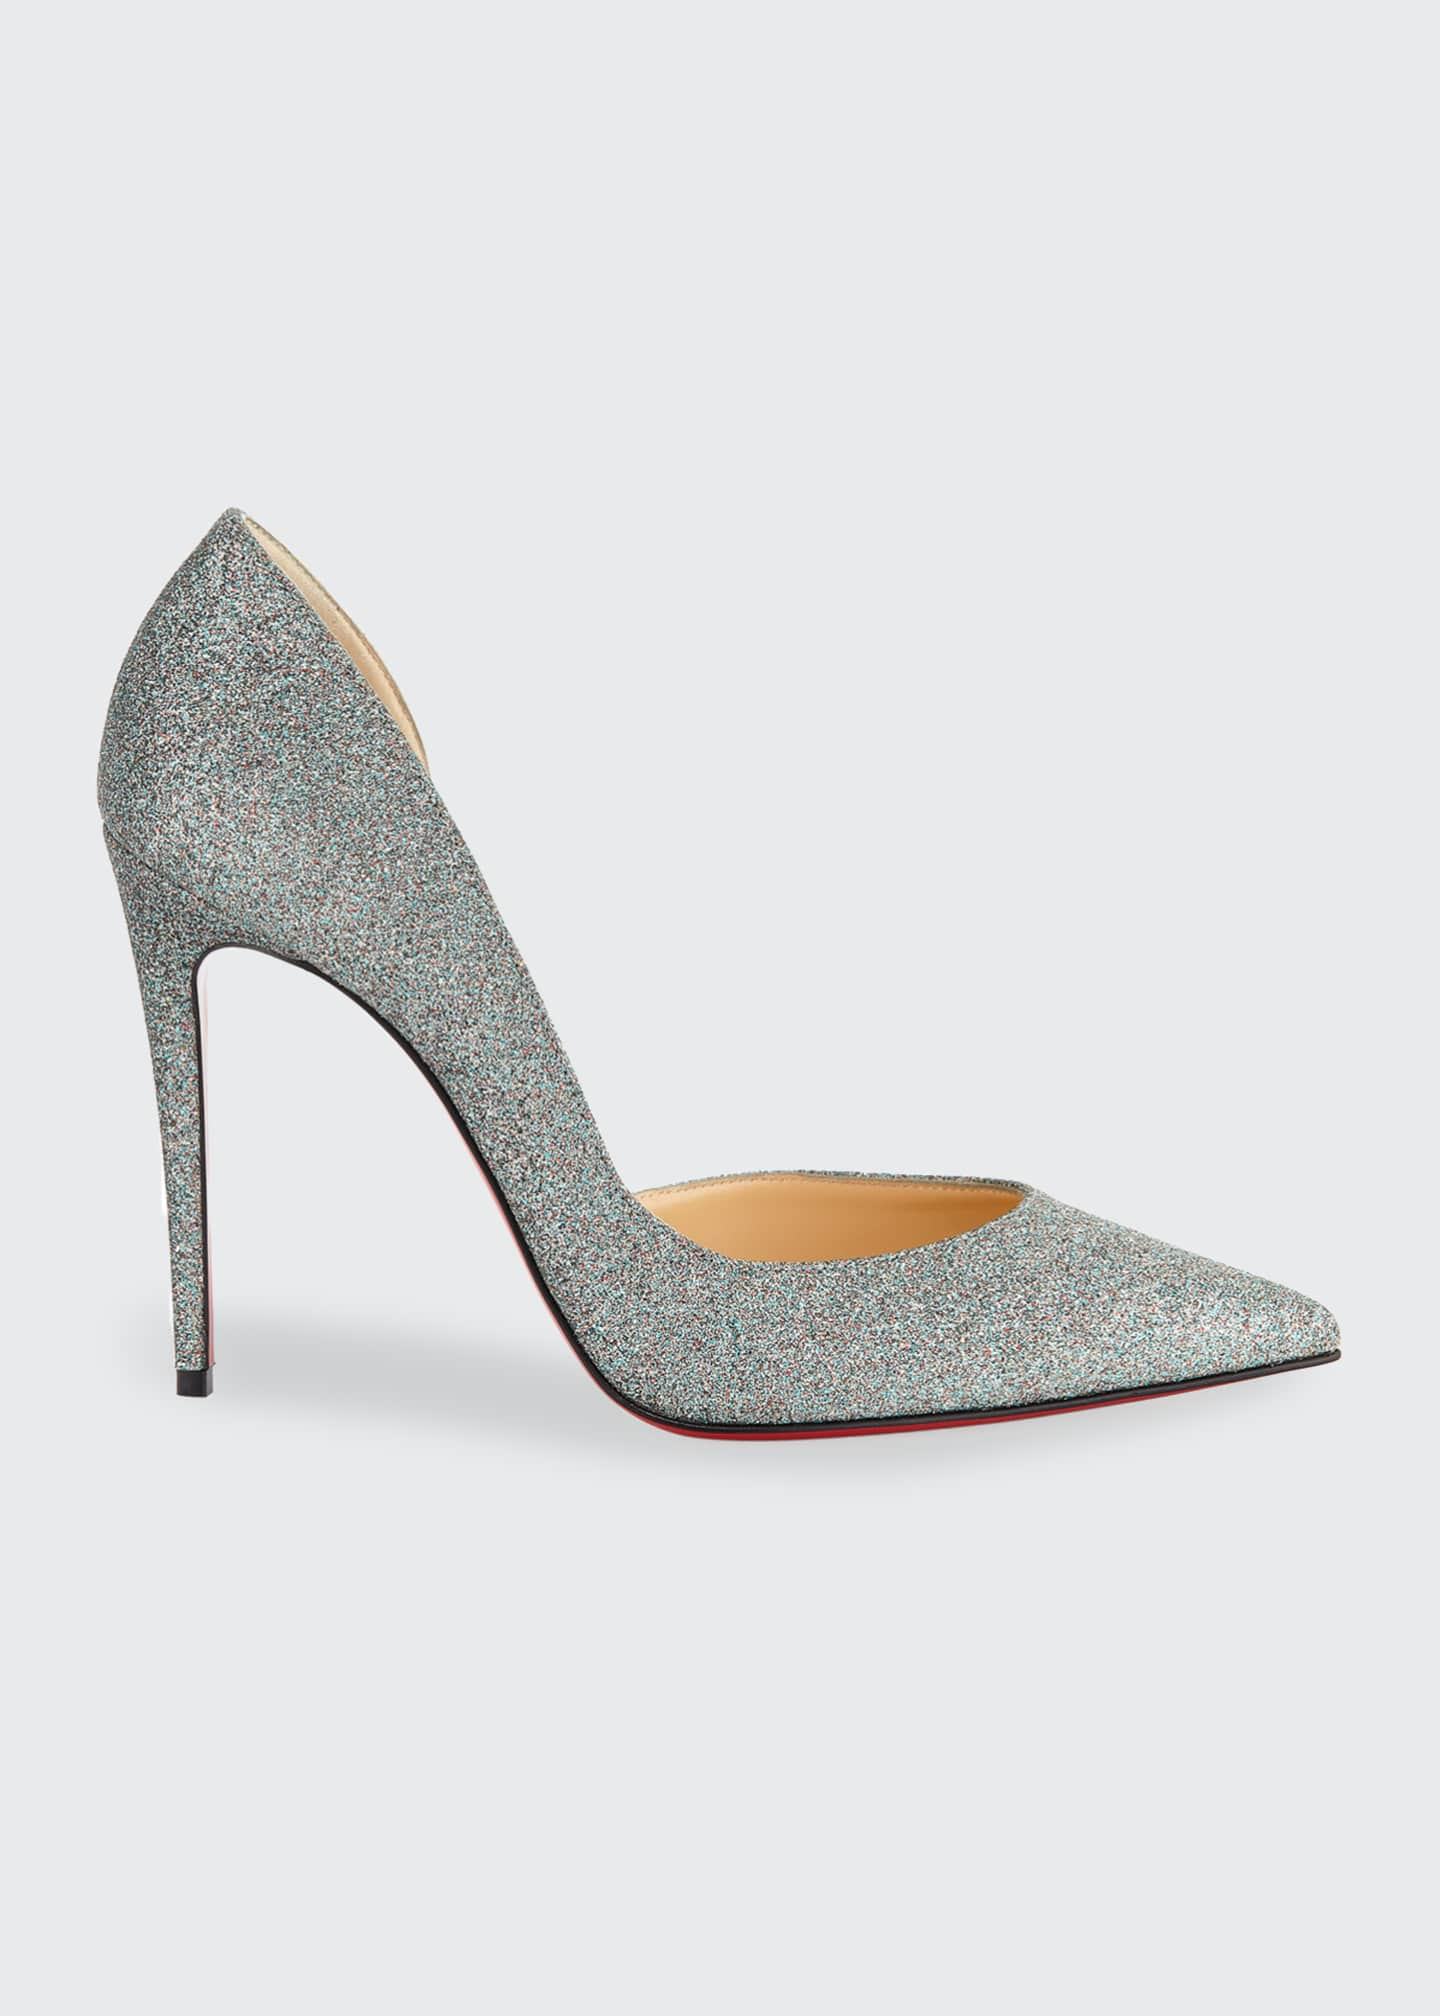 Image 1 of 2: Iriza 100mm Glitter Red Sole Pumps